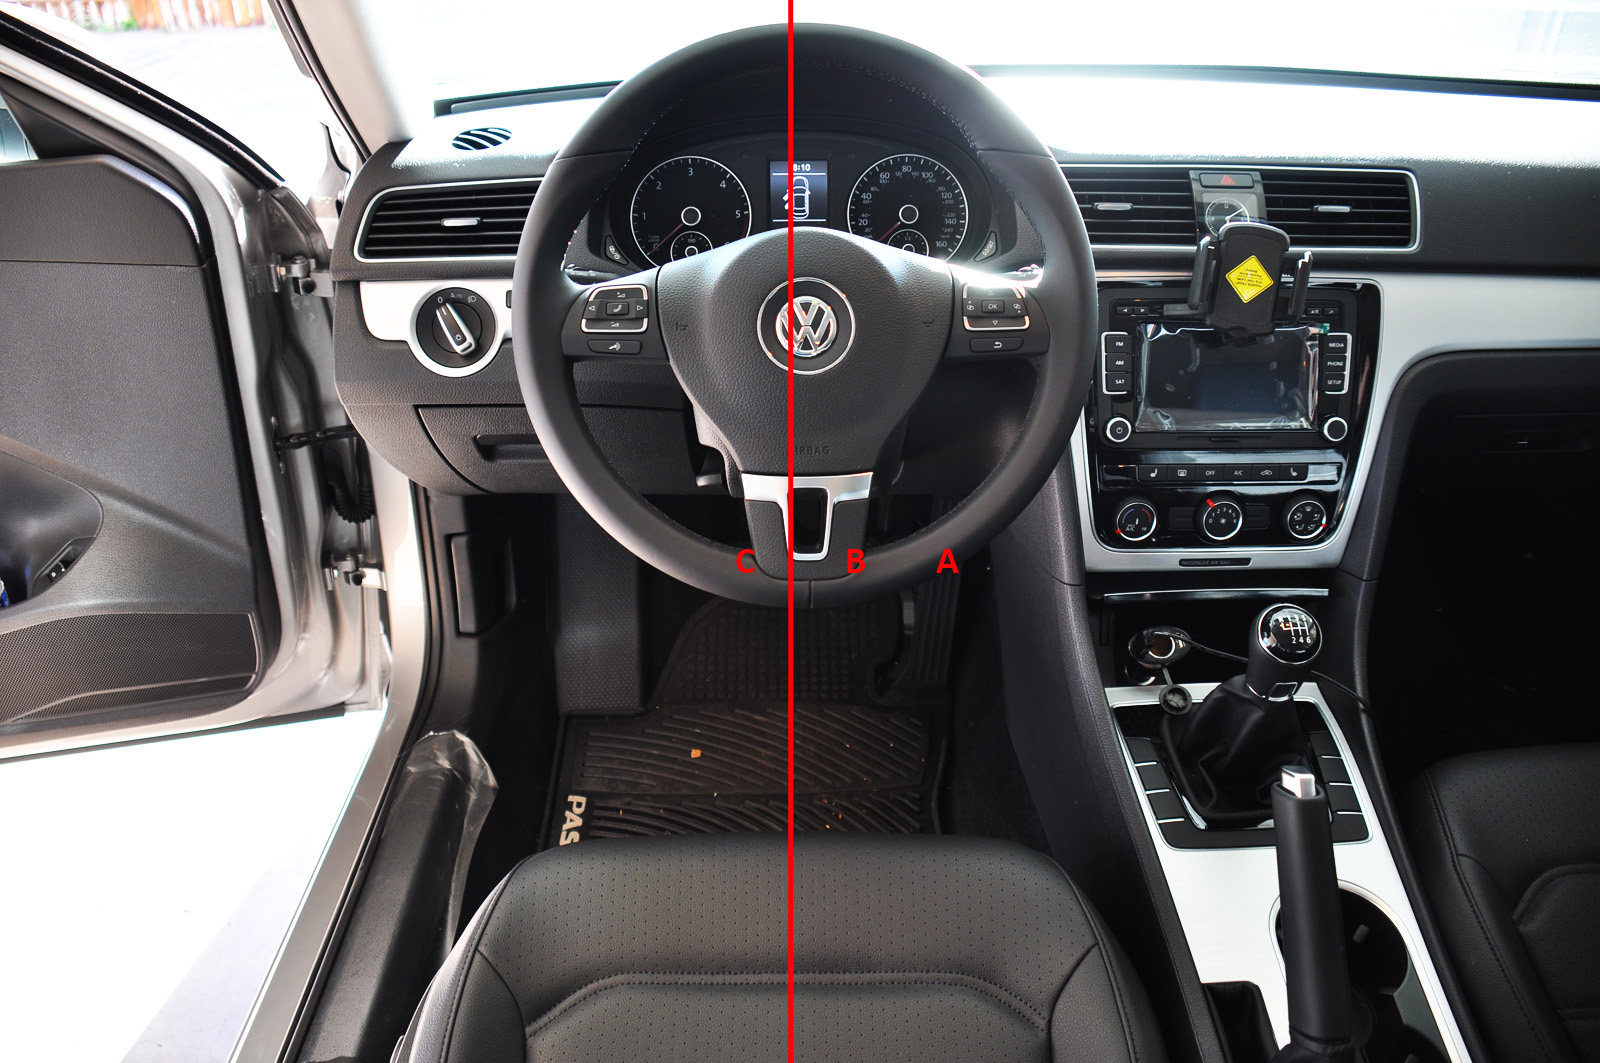 2013 vw passat manual transmission